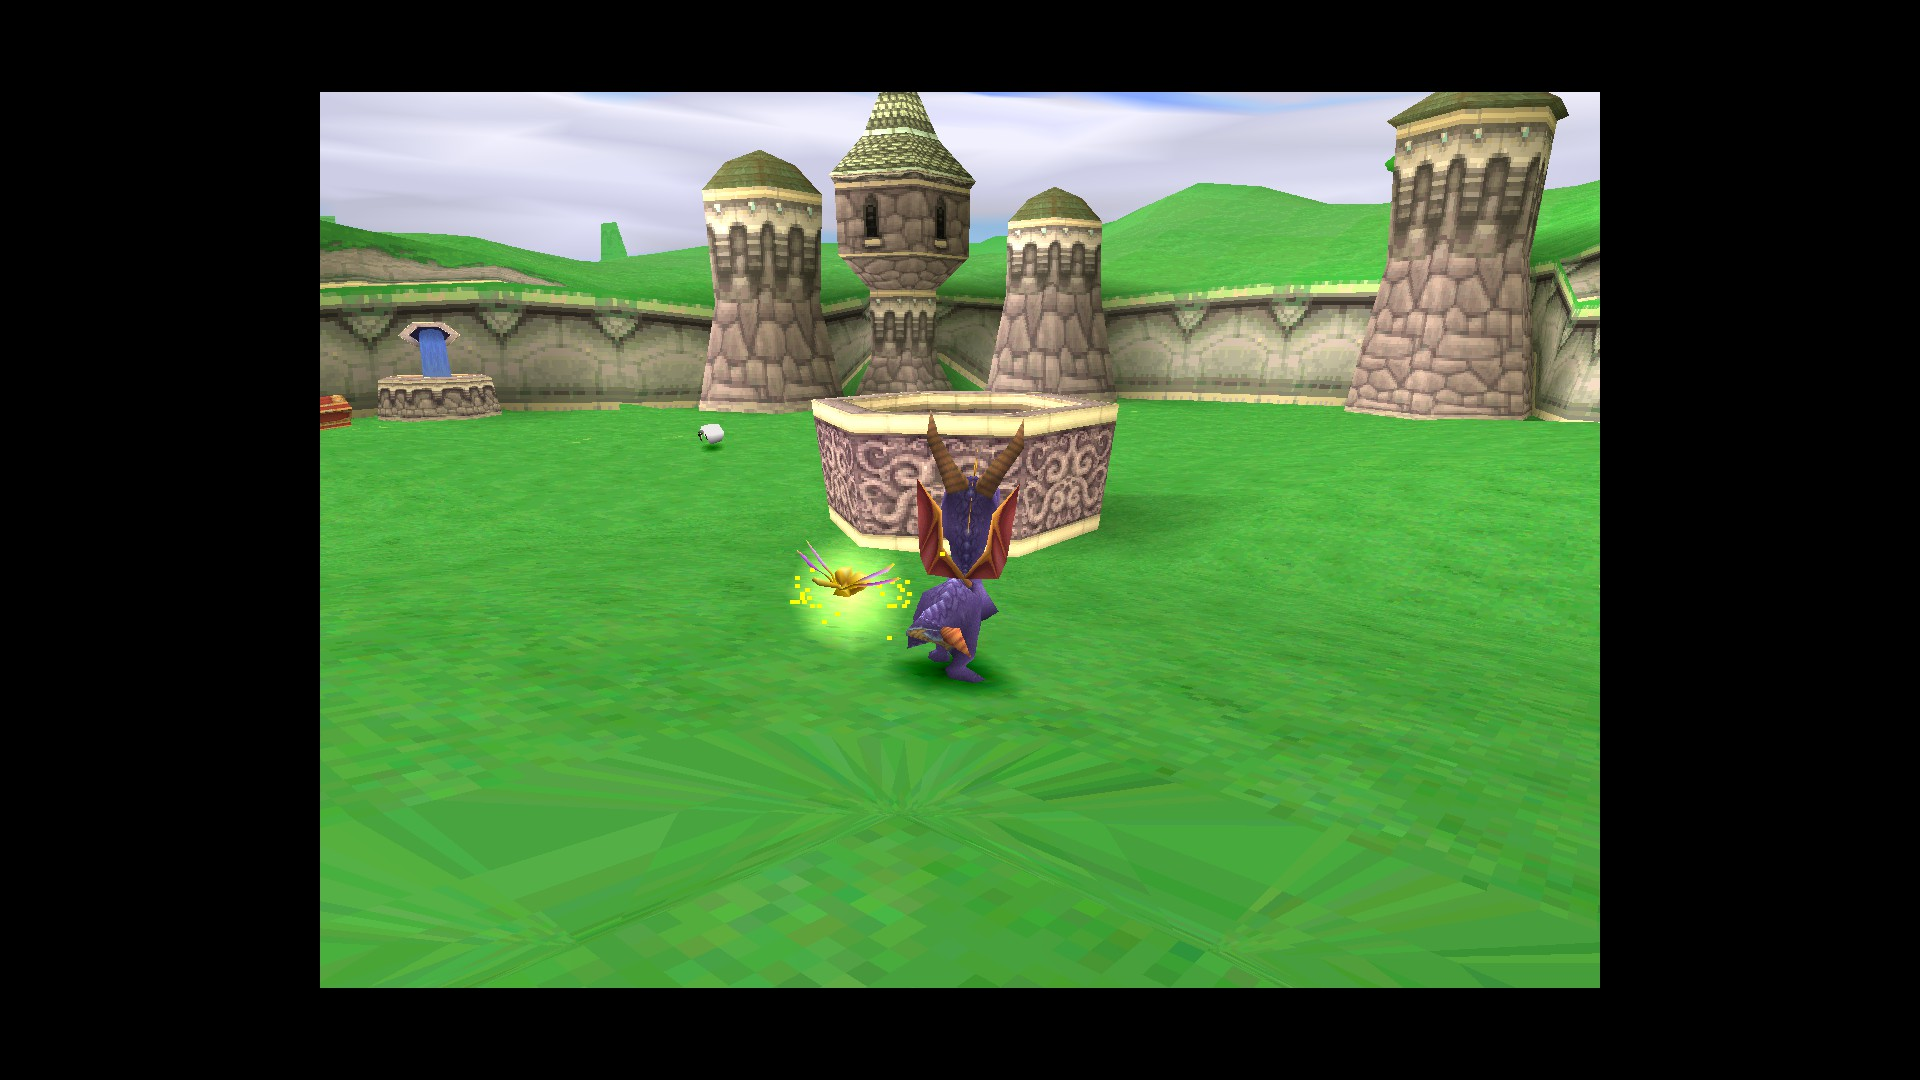 PGXP] Spyro 1 floor textures close to camera glitch with